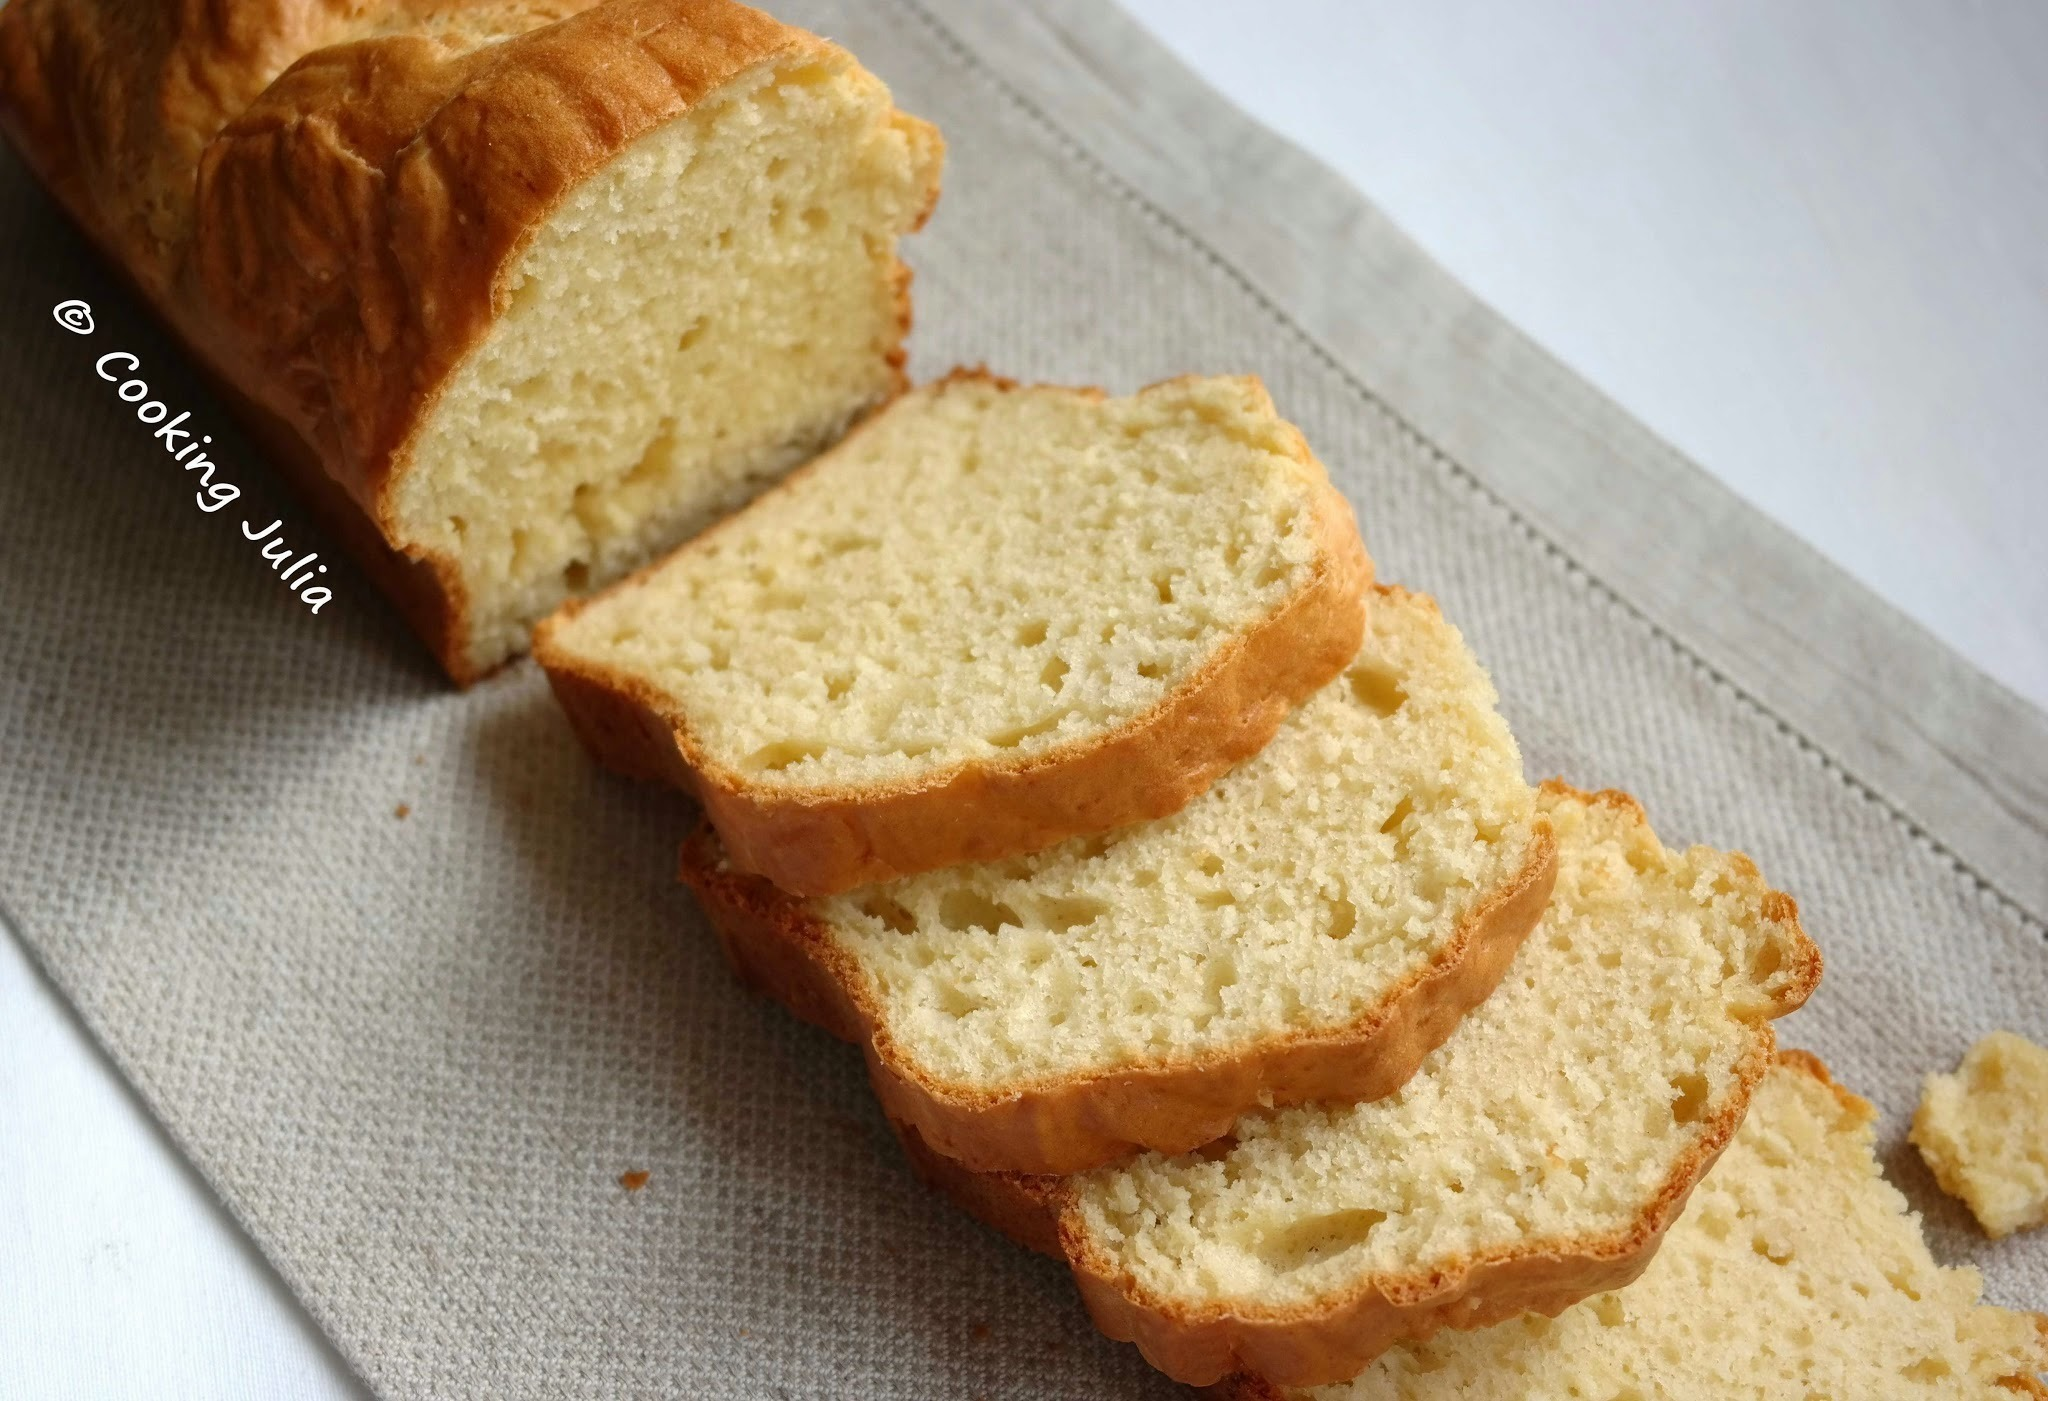 PAIN RAPIDE AU BUTTERMILK